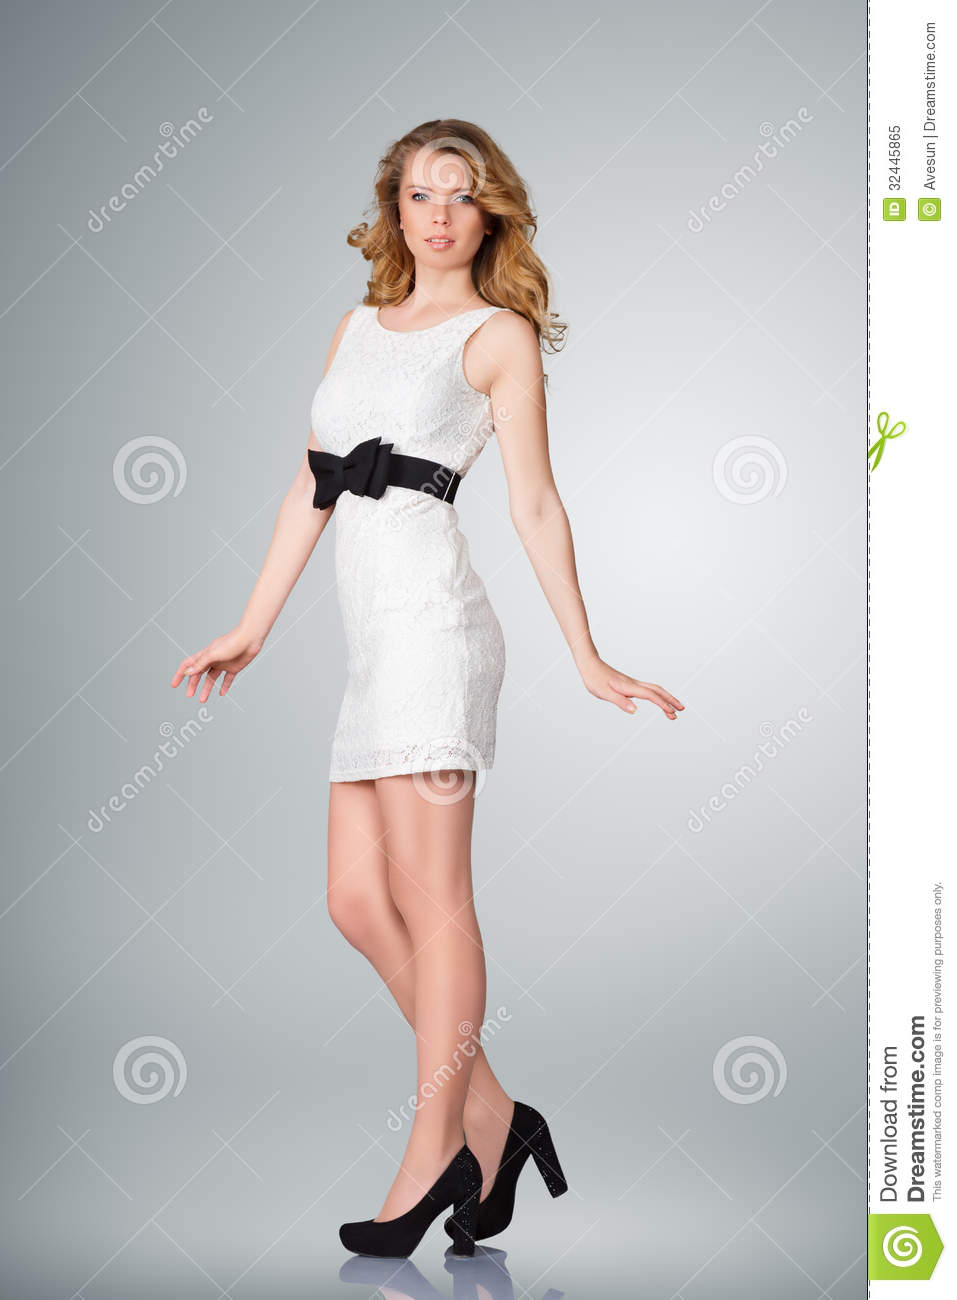 Beautiful Young Woman Full Body Royalty Free Stock Photo ...